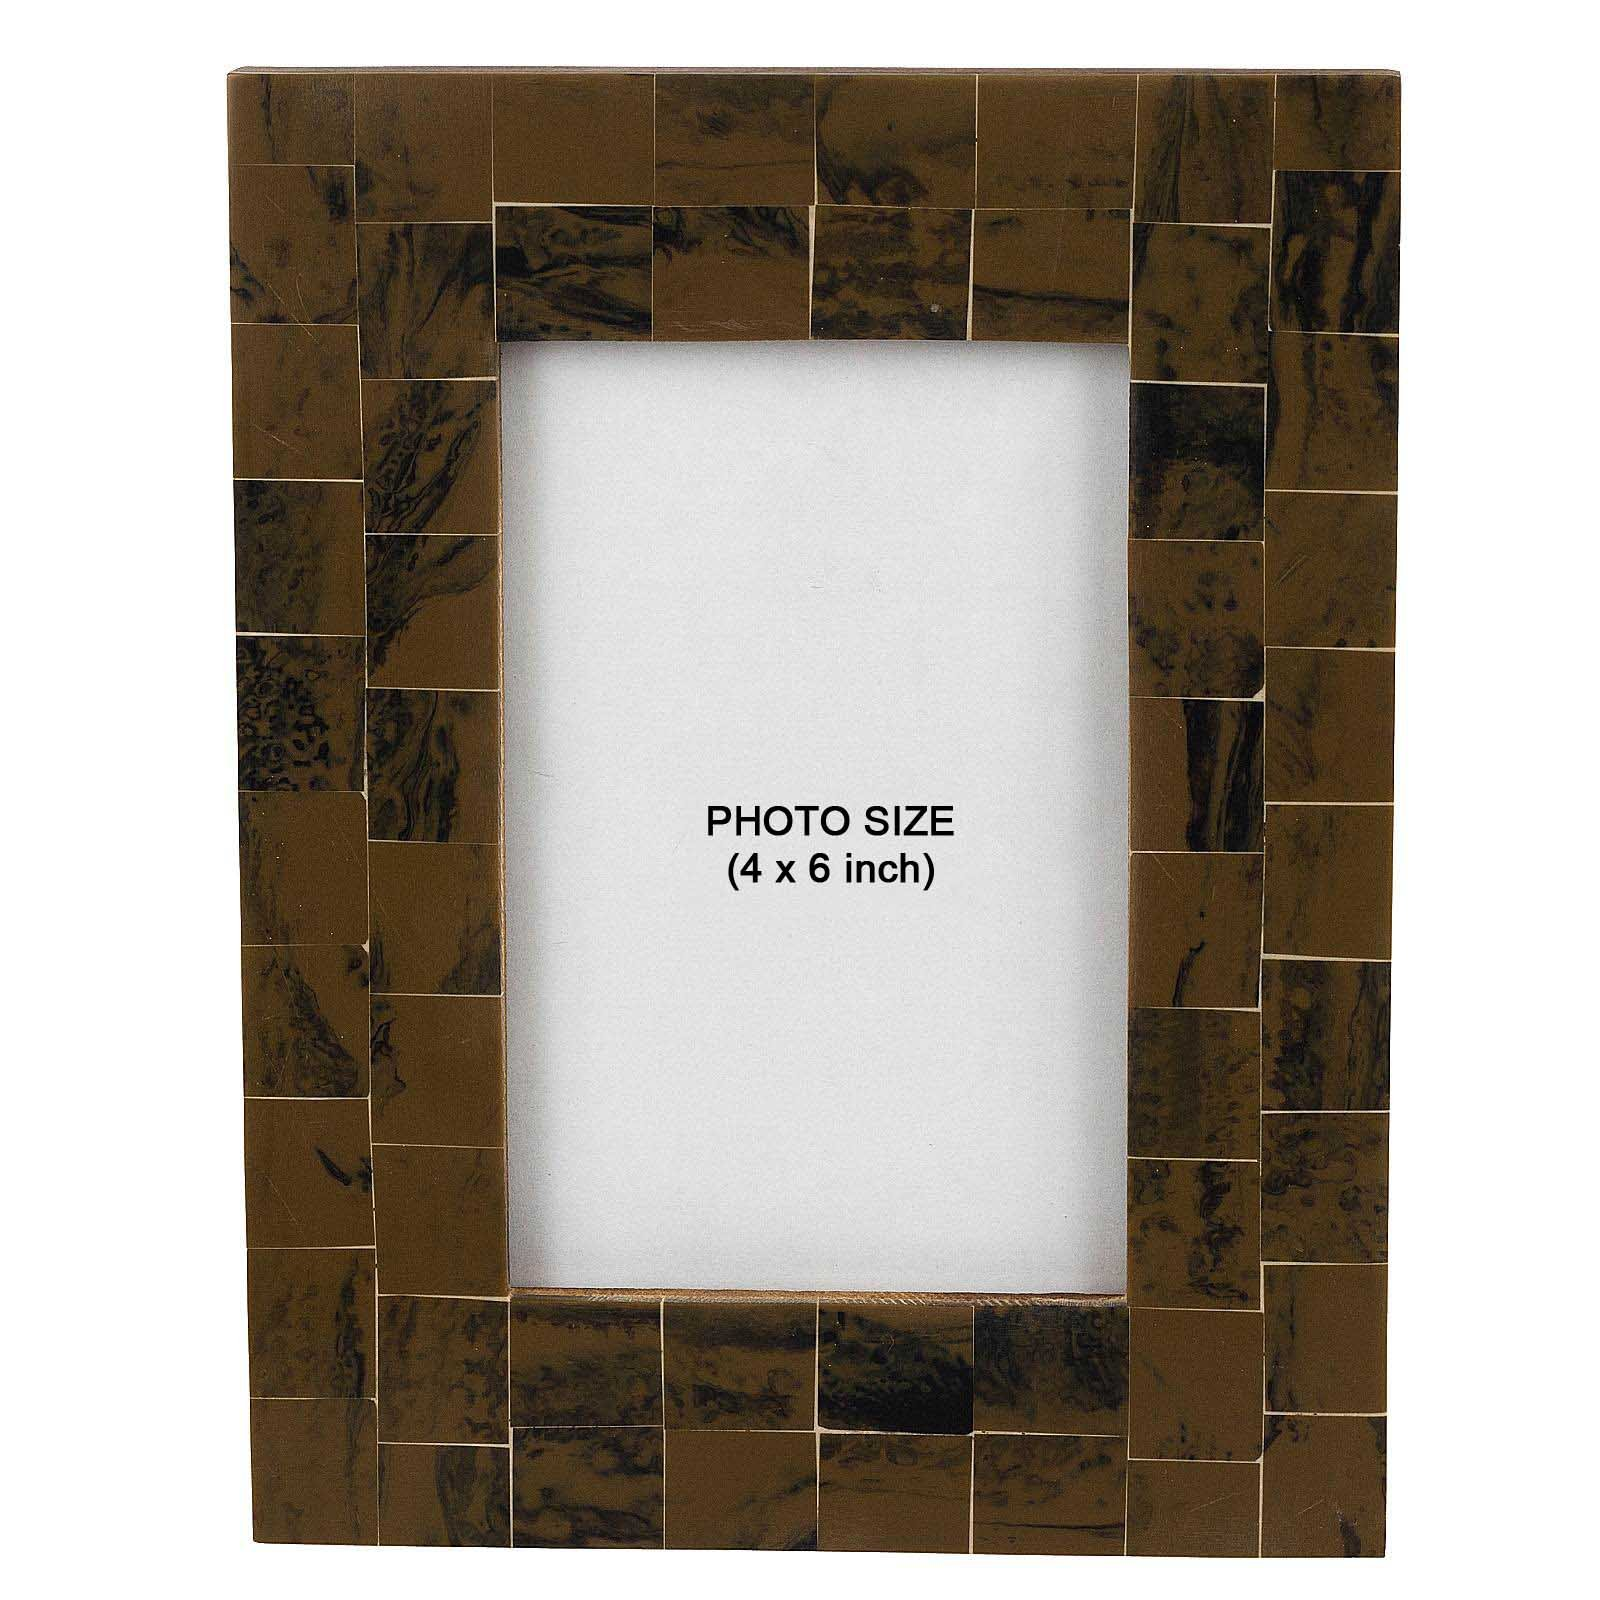 Fine Craft India Wooden Photo Frame Photo Size 4 x 6 inch MPN-wooden_photo_frame_10